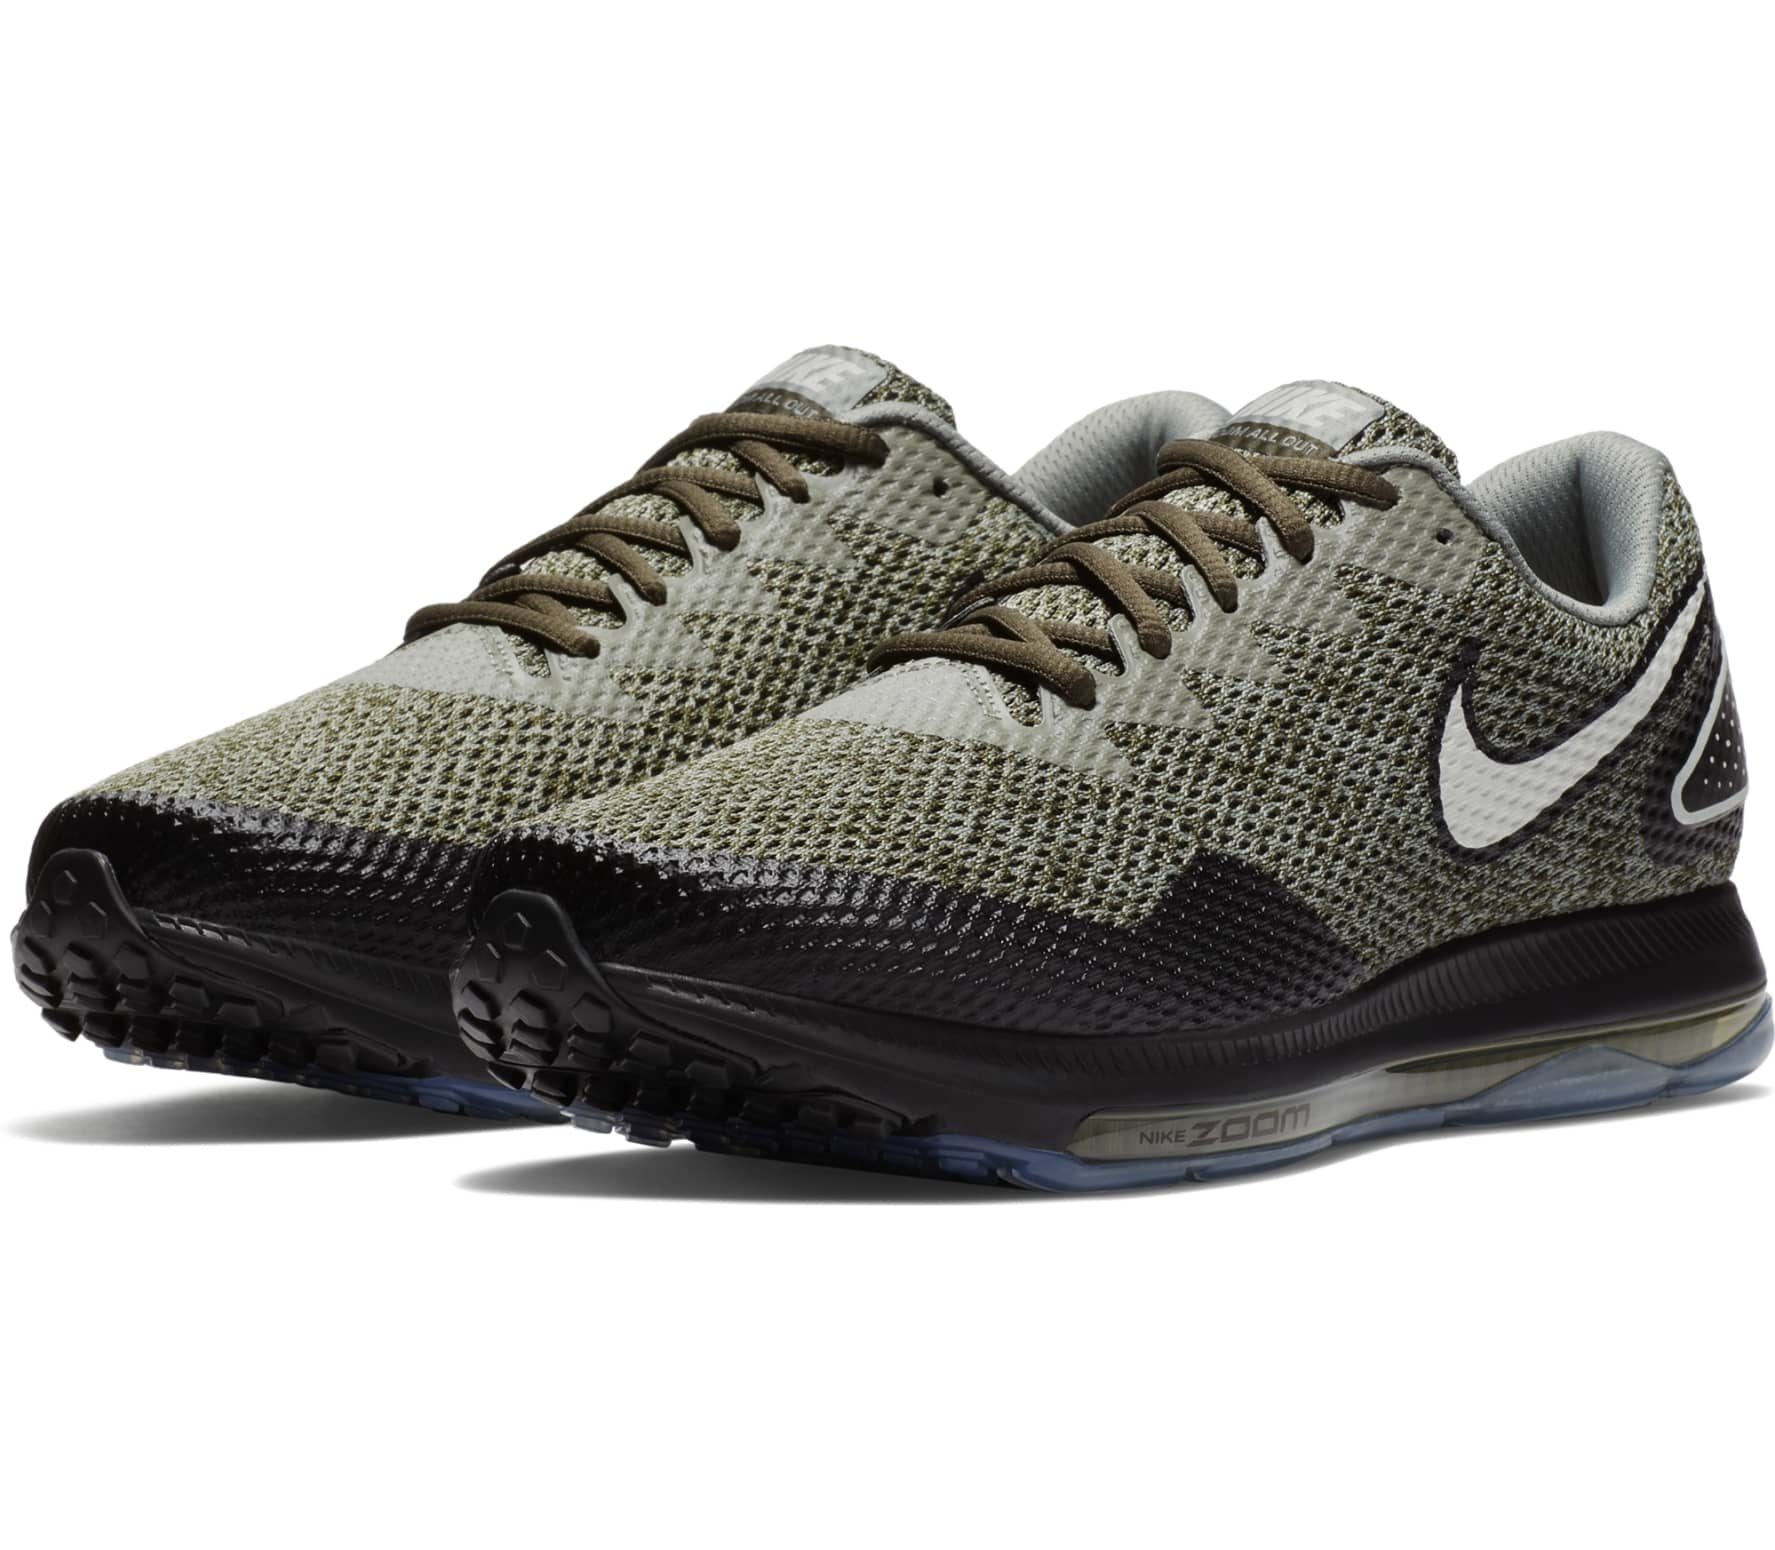 new styles 24733 cbed5 Nike - Zoom All Out Low 2 mens running shoes (brownblack)